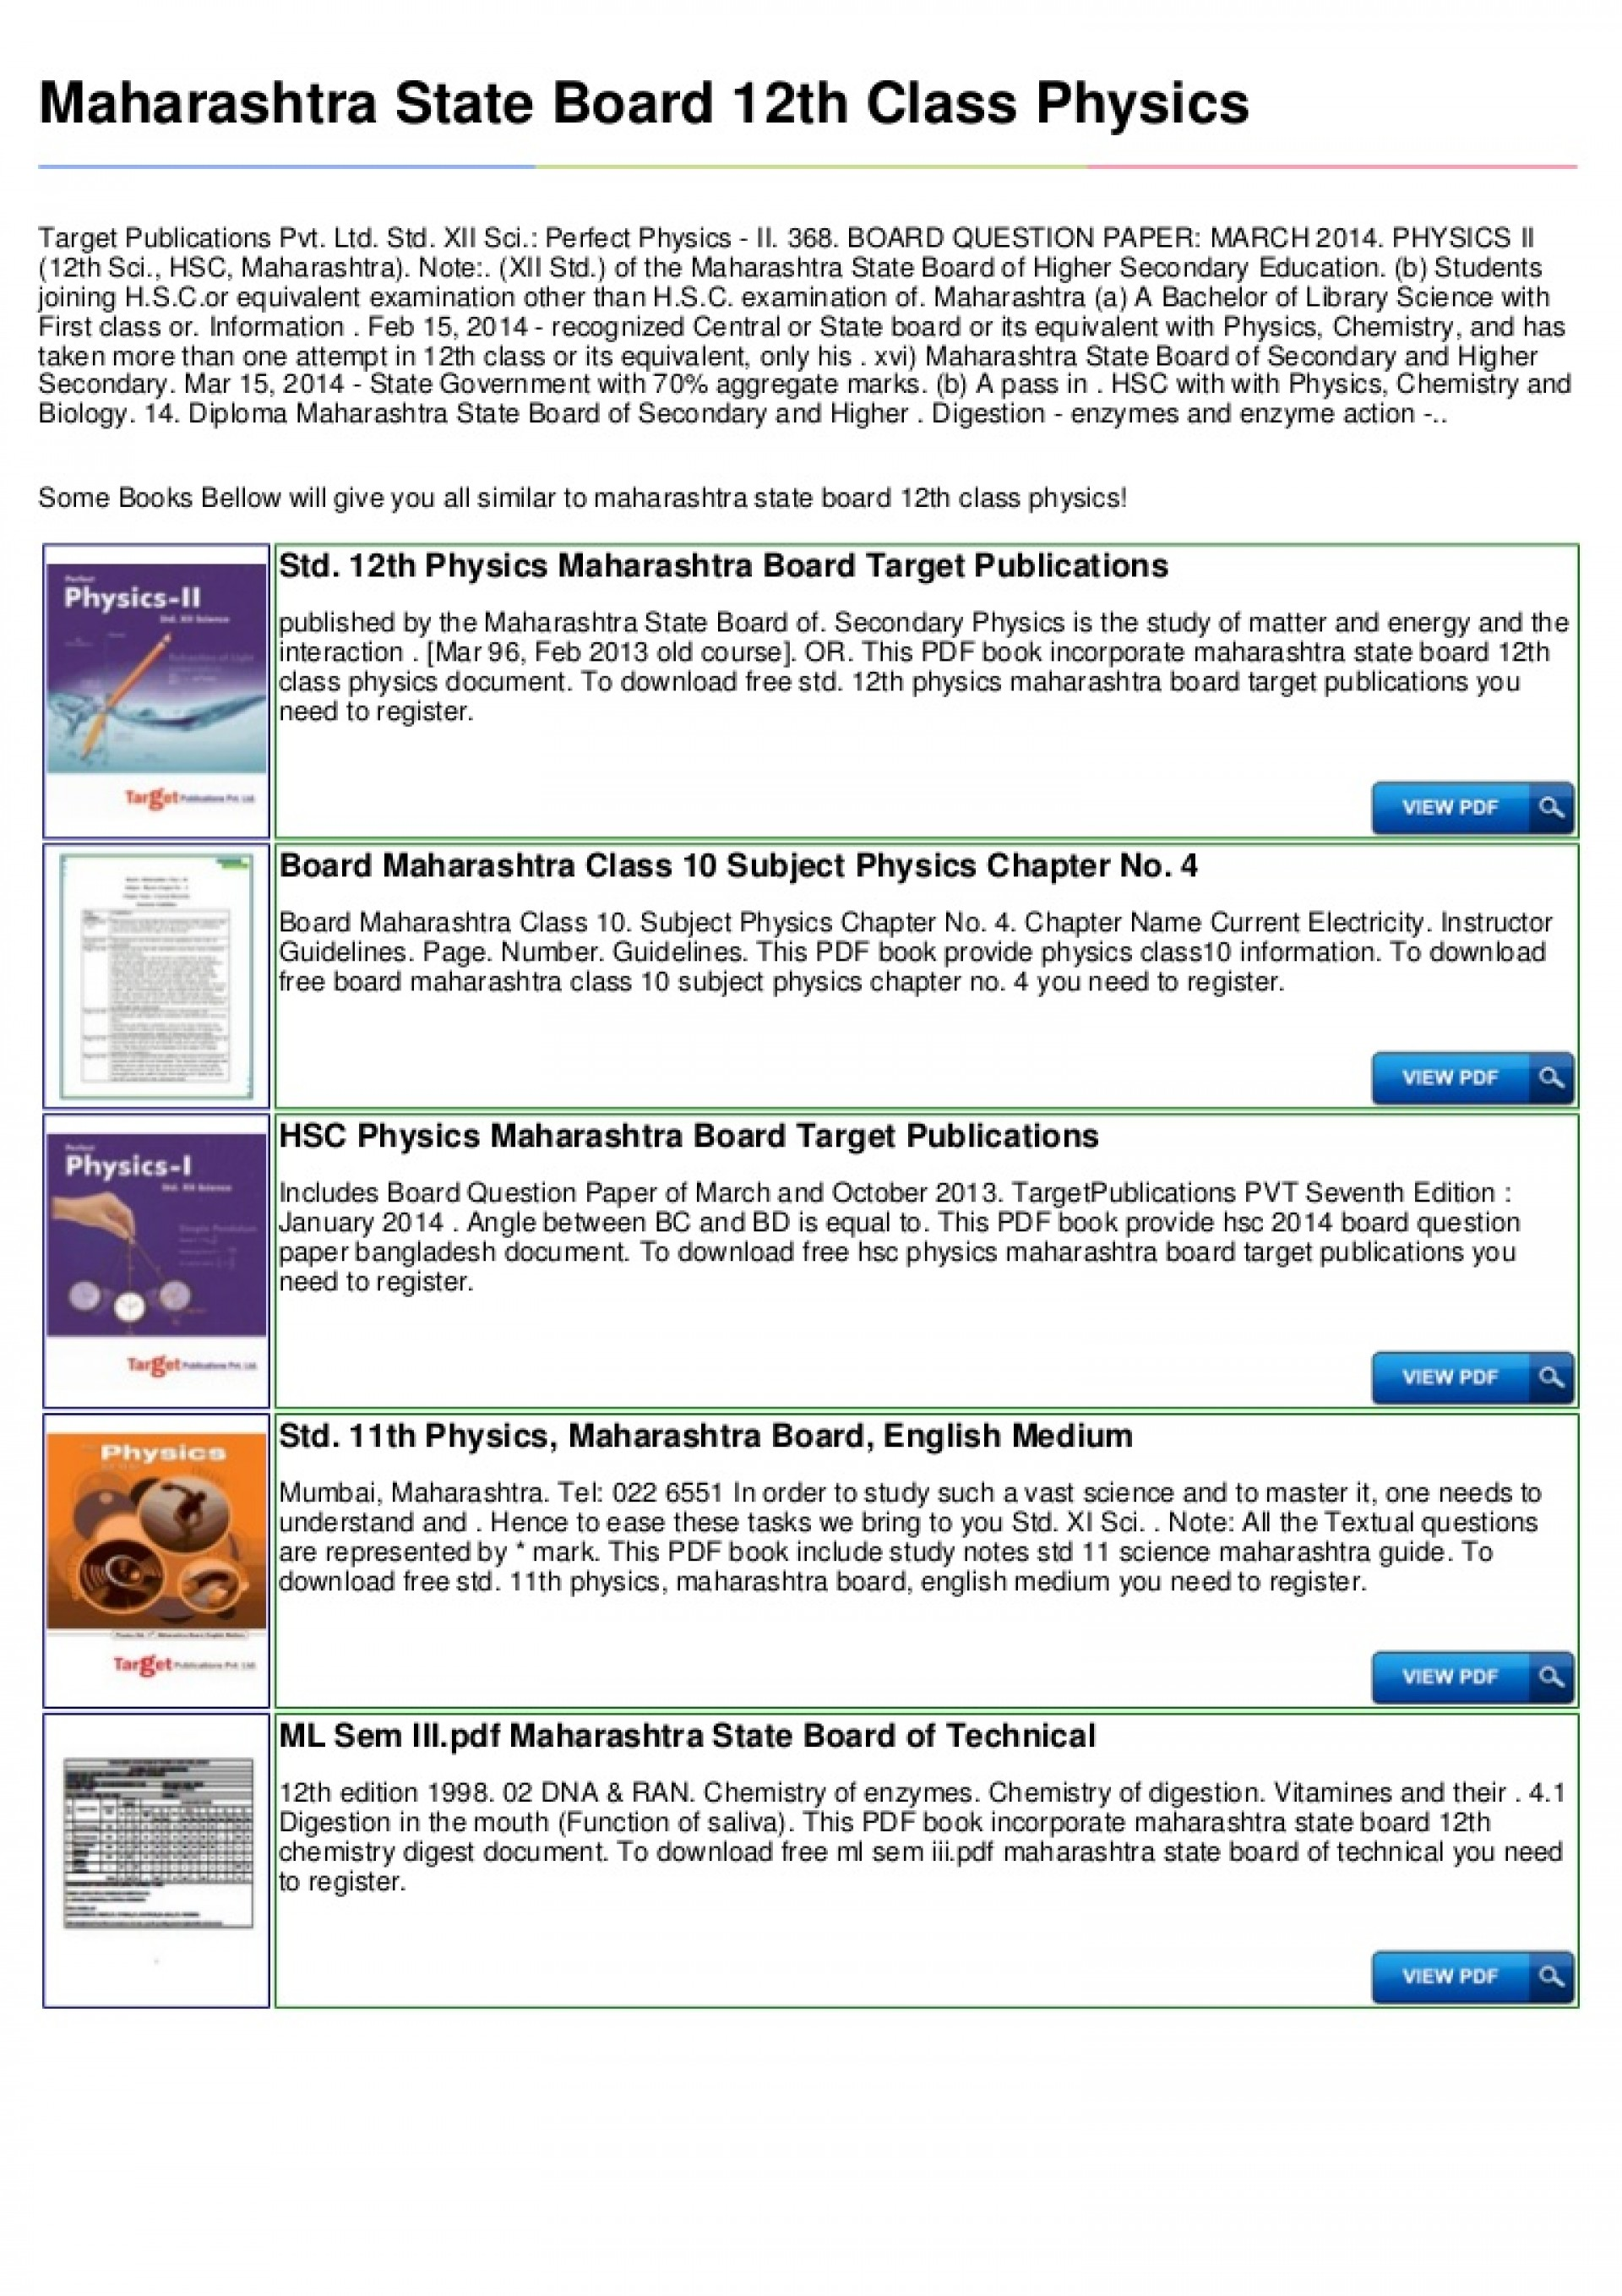 013 Maharashtra State Board 12th Class Physics Conversion Gate02 Thumbnail Researchs Free Download Pdf Magnificent Research Papers 1920